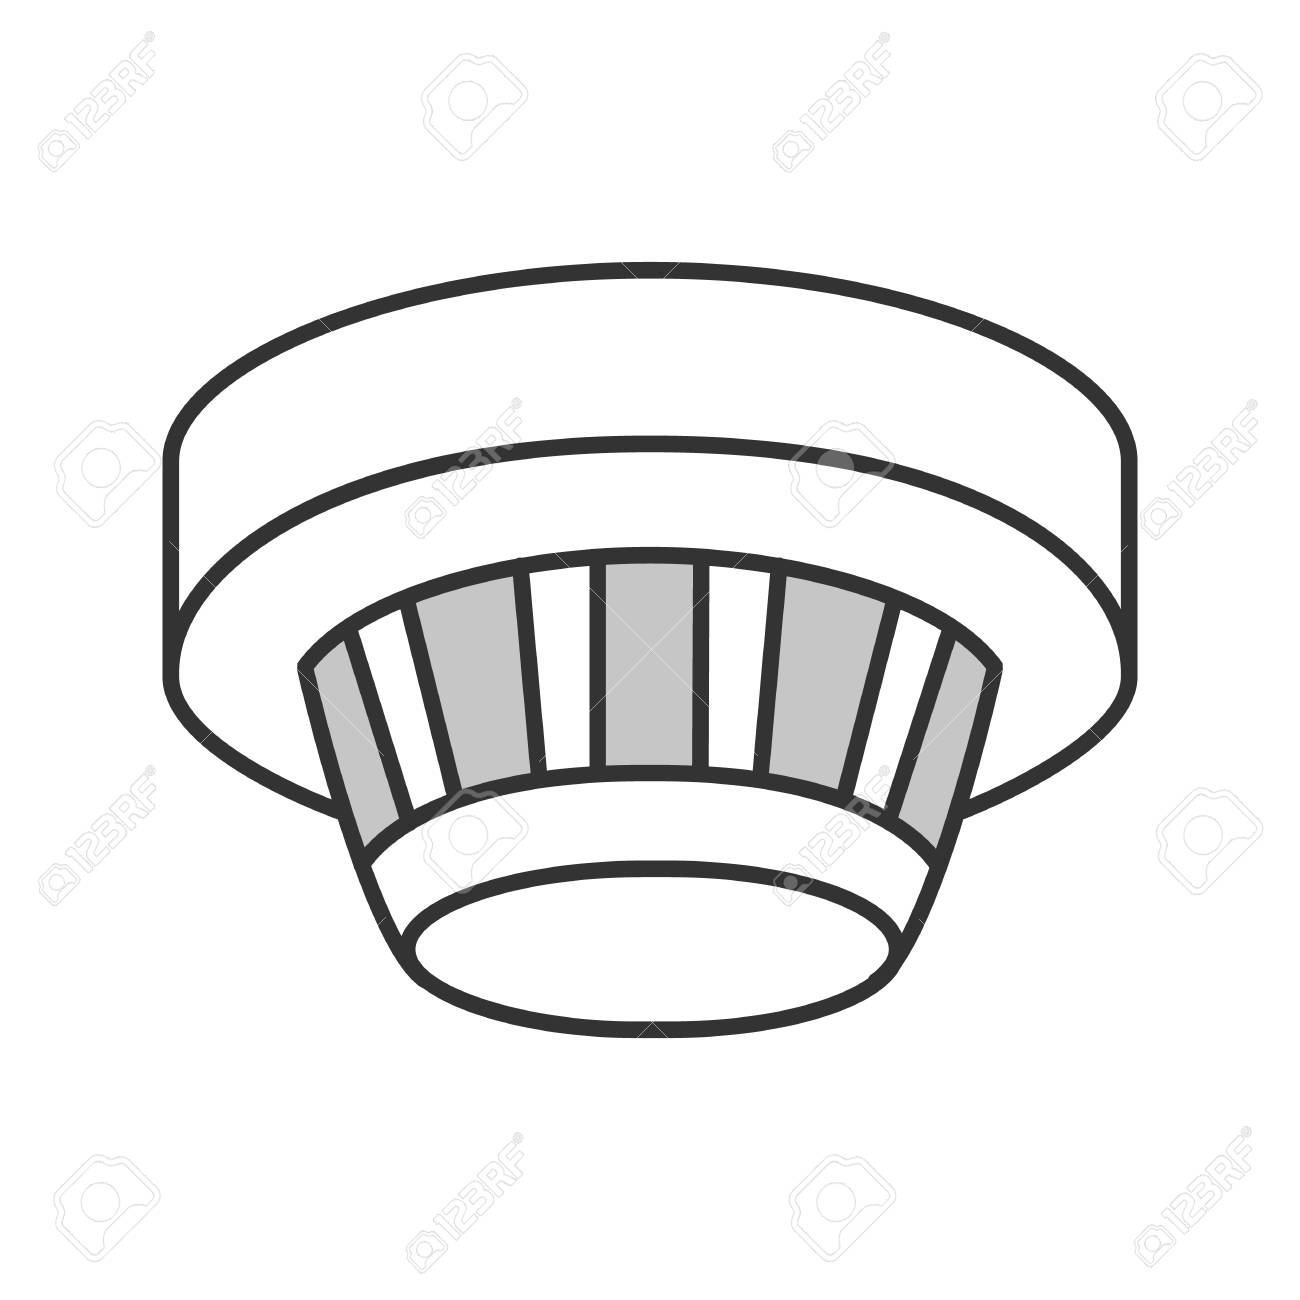 Fire Alarm System Icons Set. Royalty Free Cliparts, Vectors, And Stock  Illustration. Image 134946077.